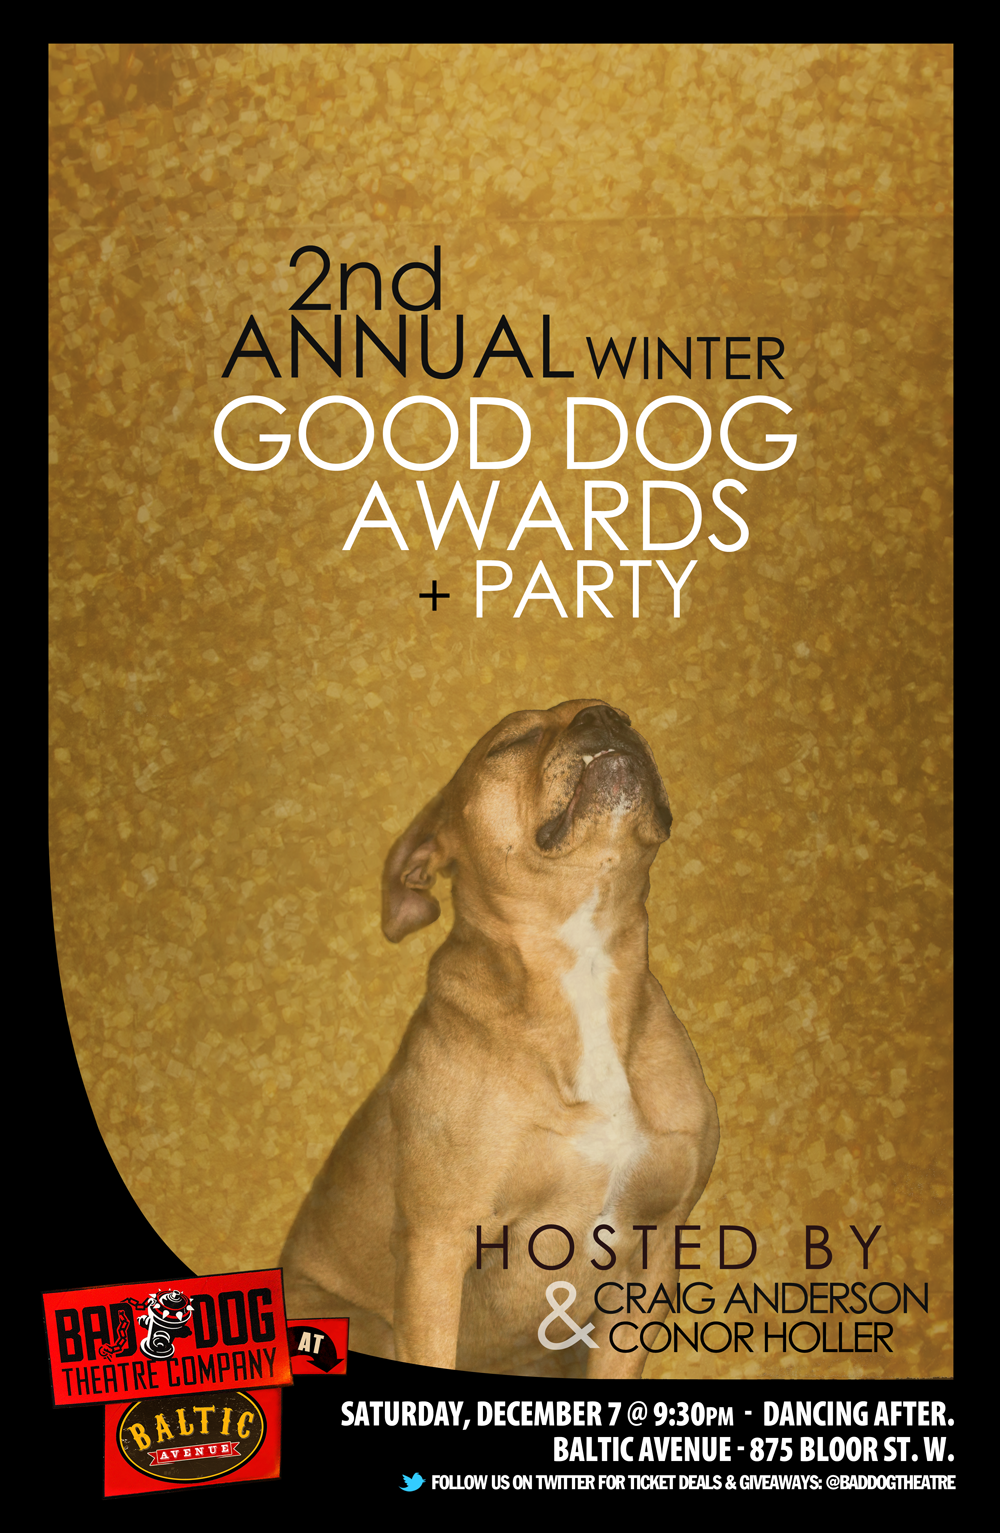 winter-good-dogs-2013.png